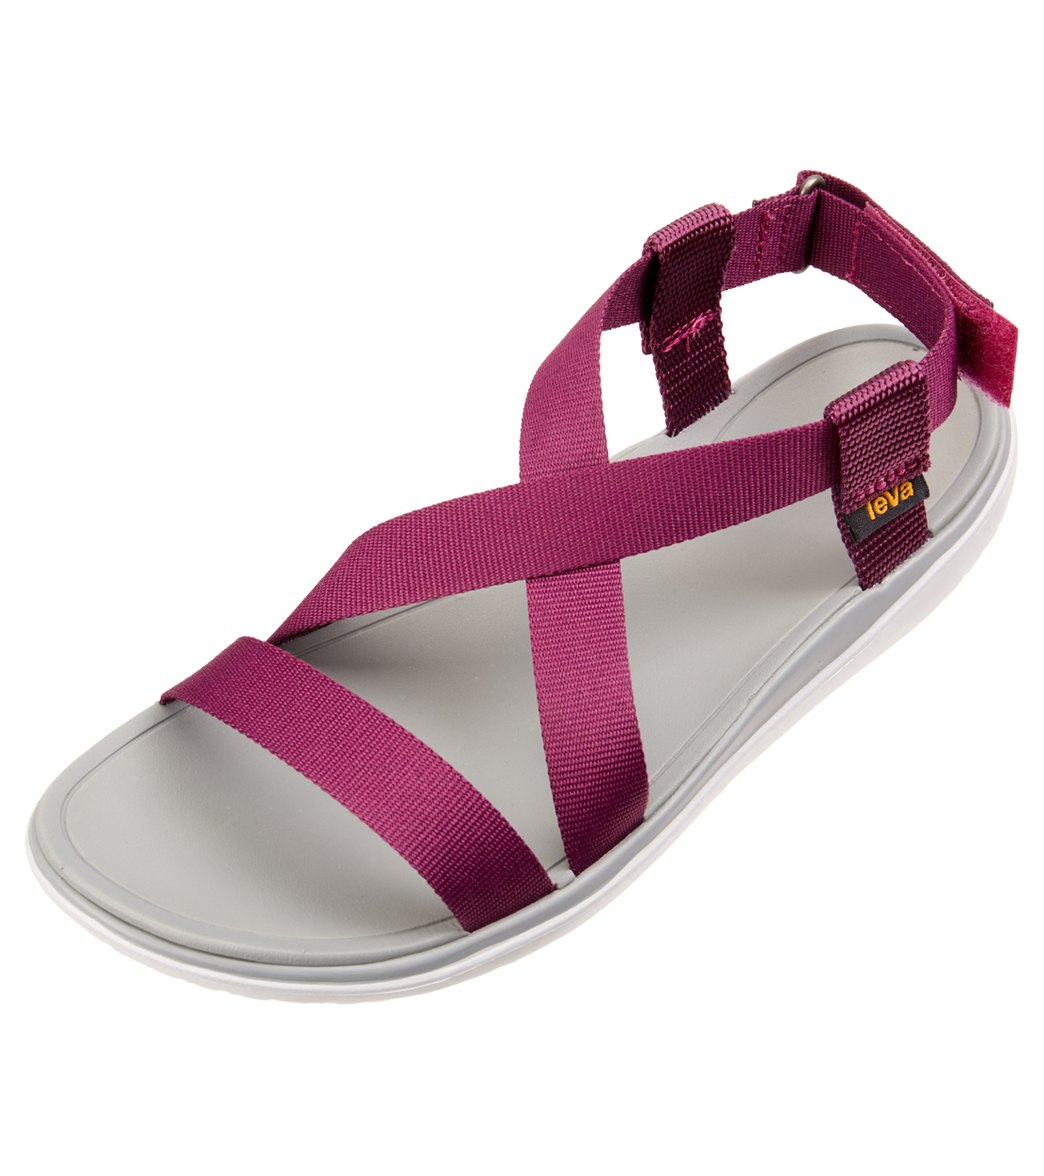 e1892b10ab6ff7 Teva Women s Terra Float Livia Sandal at SwimOutlet.com - Free Shipping